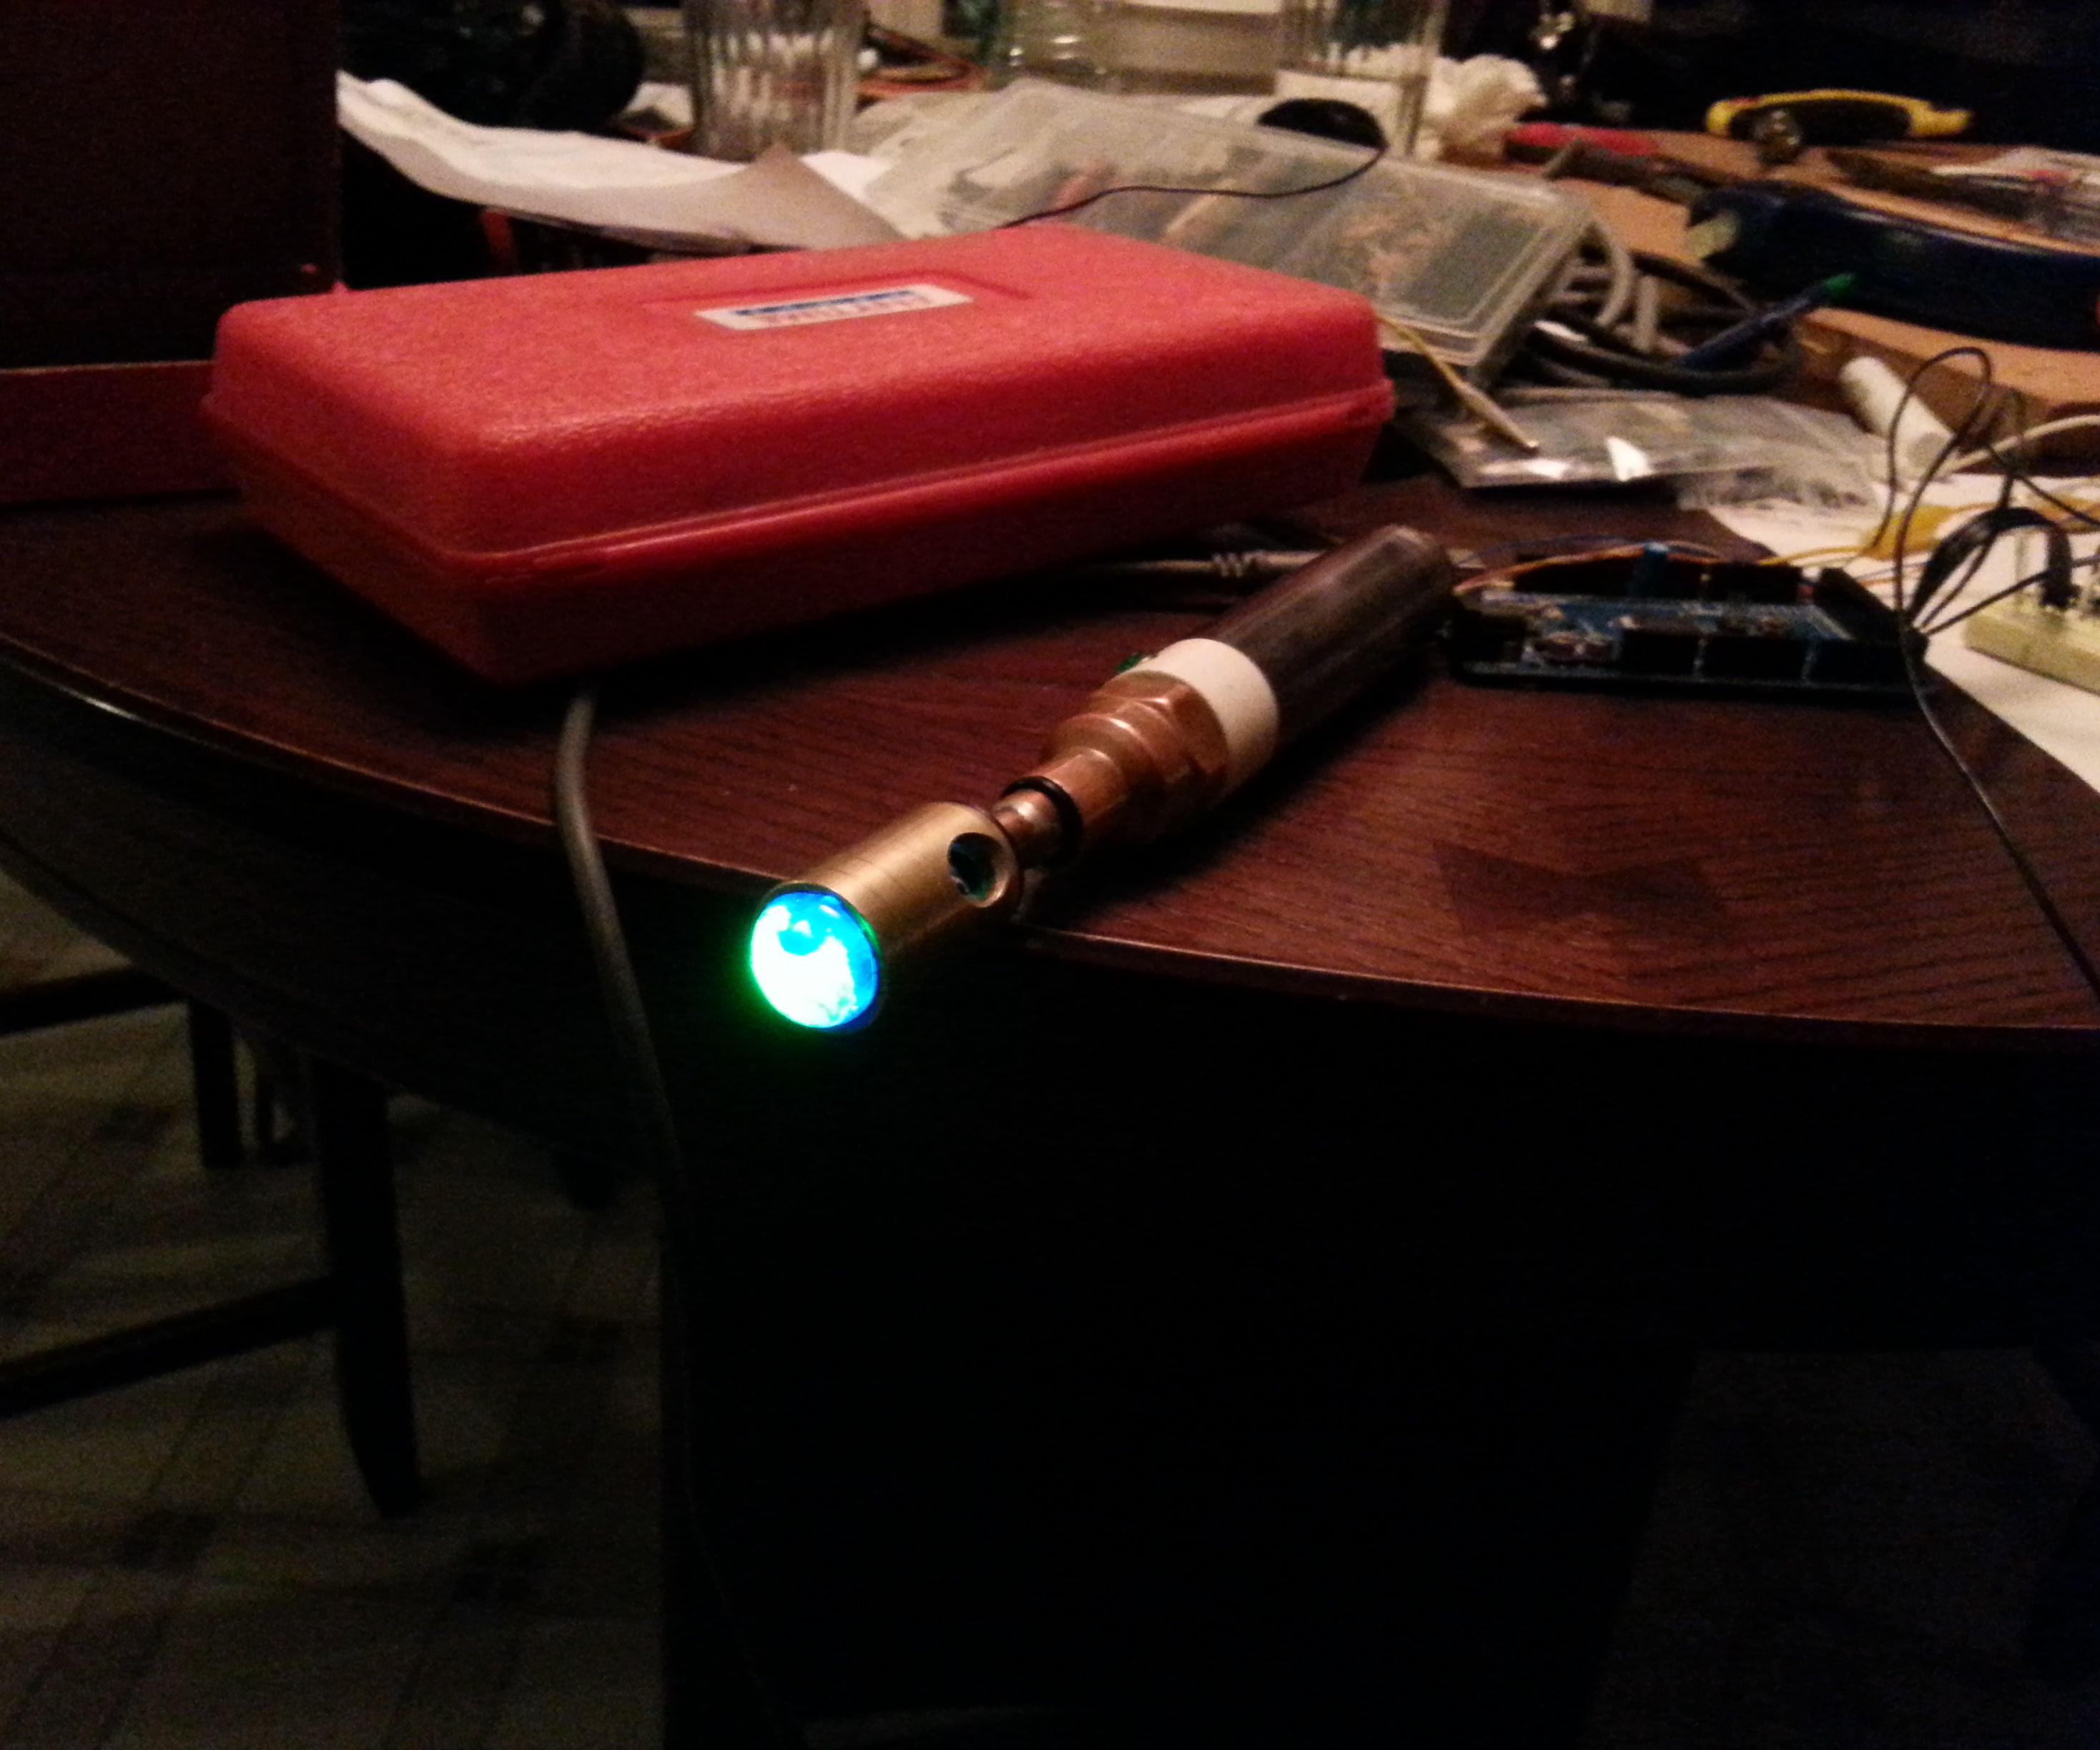 Working Sonic Screwdriver - Version 3.0